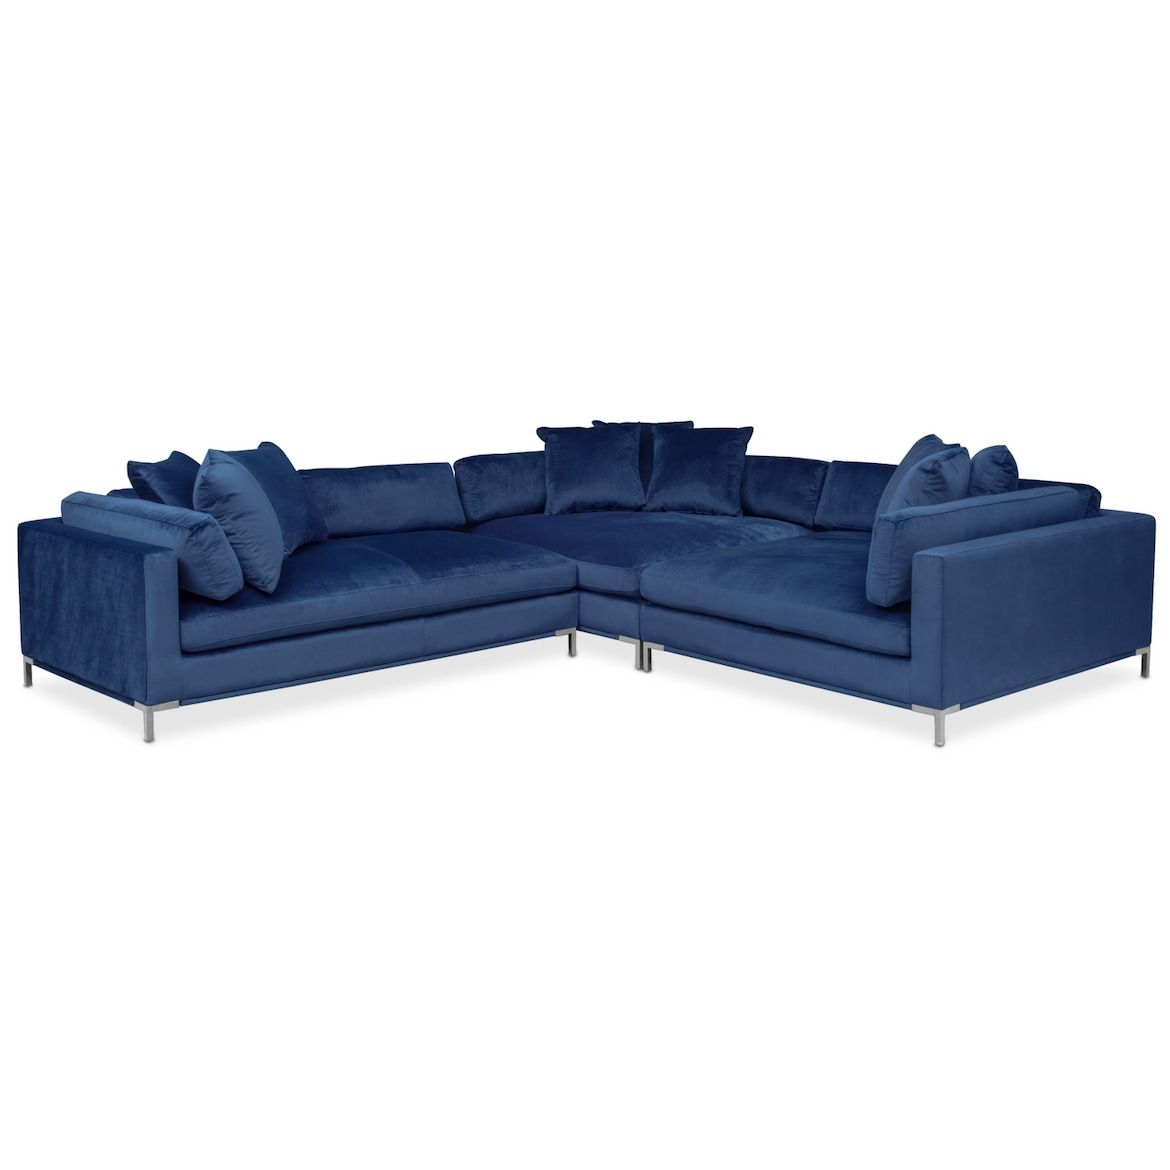 Moda 3 Piece Sectional With Chaise Value City Furniture And Mattresses White Furniture Living Room Furniture Sectional